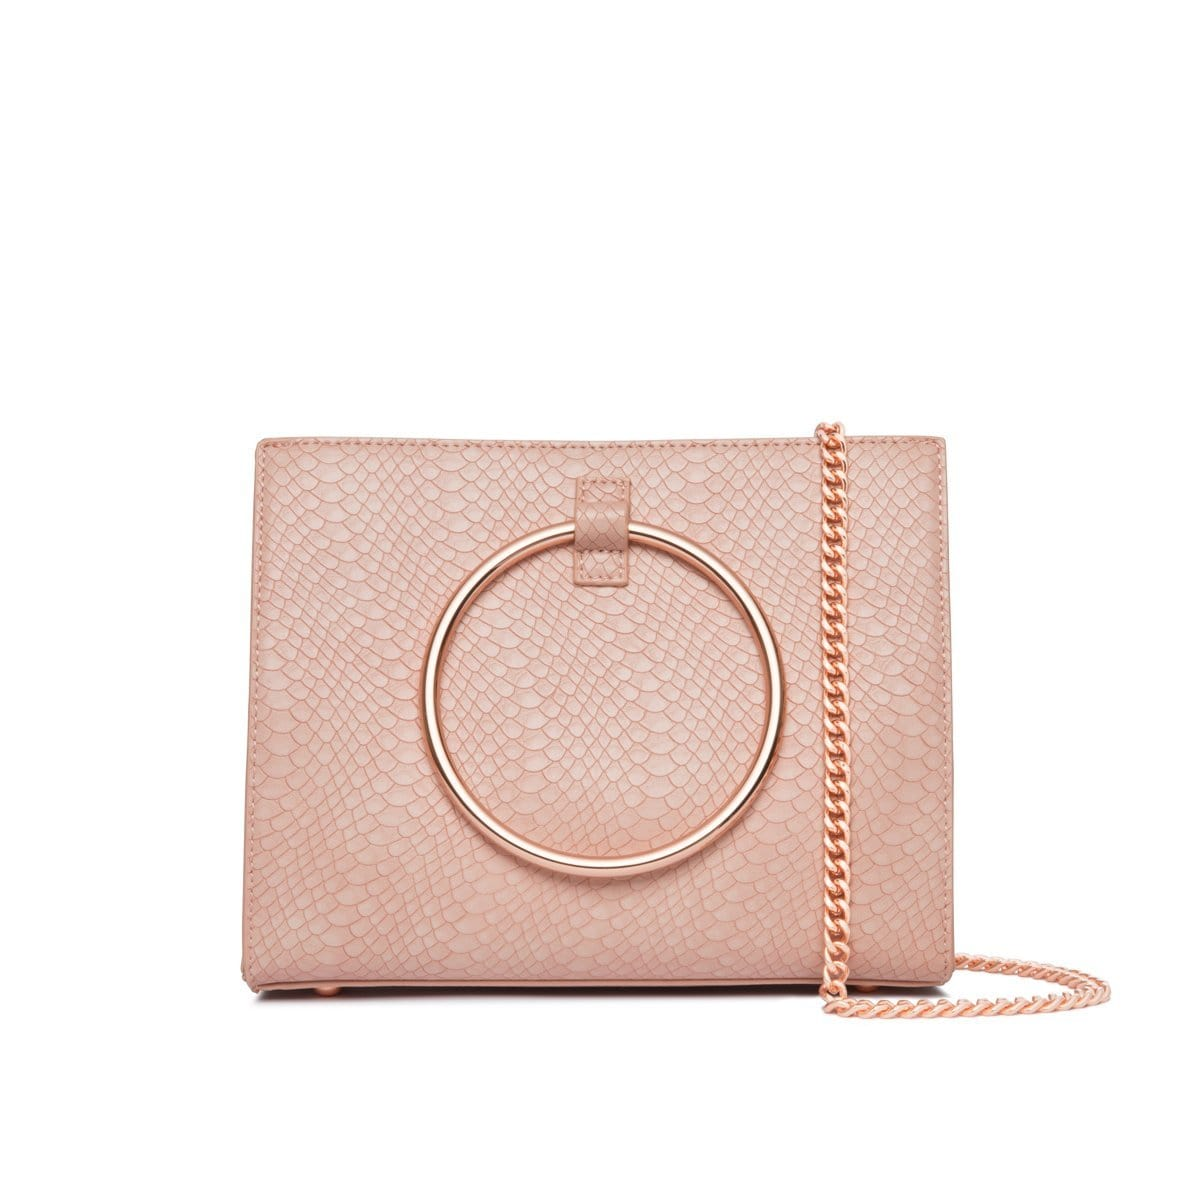 Carnation Pink Moda Handbag Rose Gold